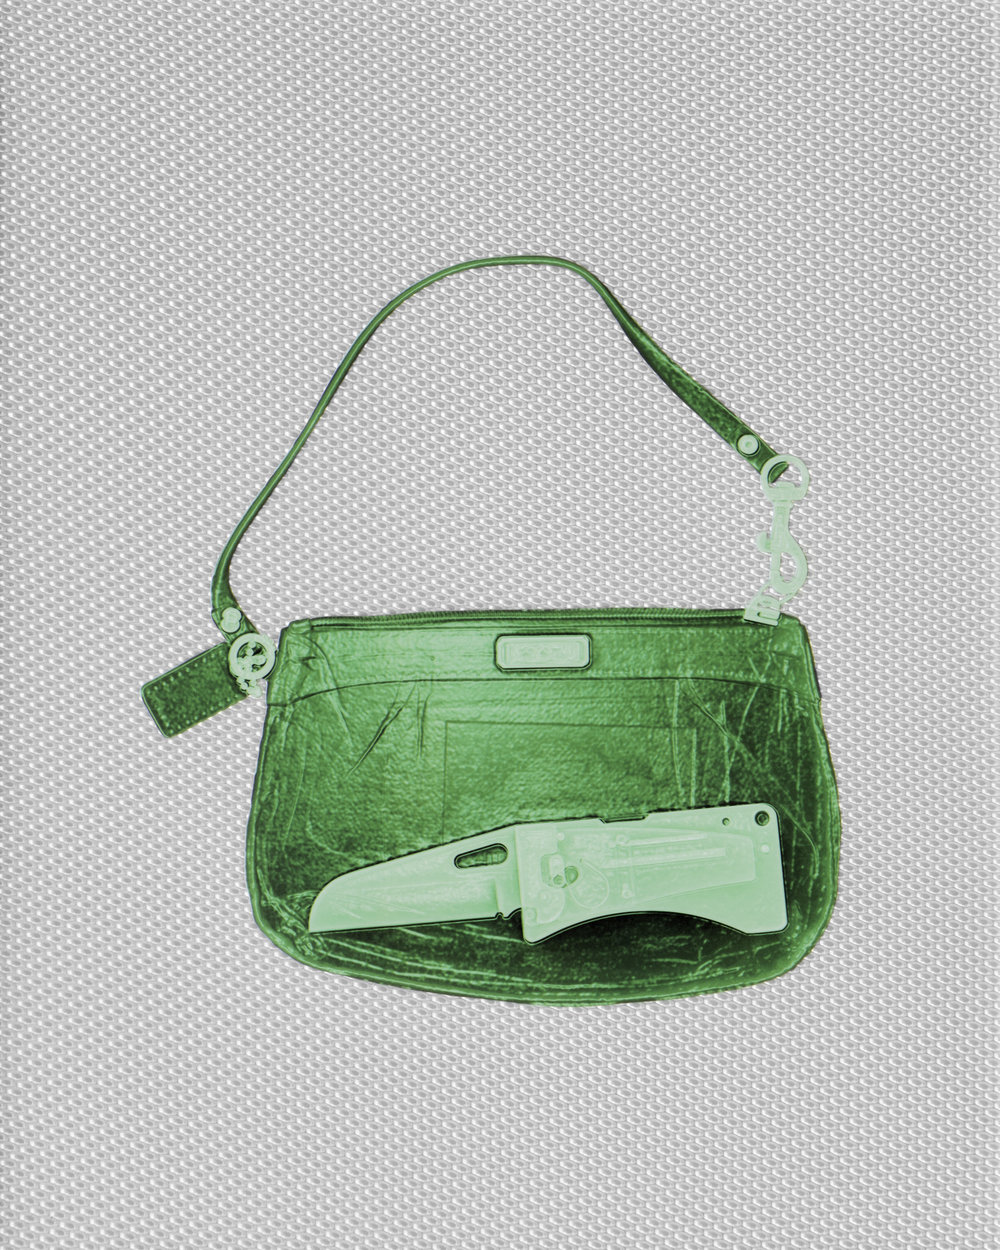 Green Coach Handbag with Knife